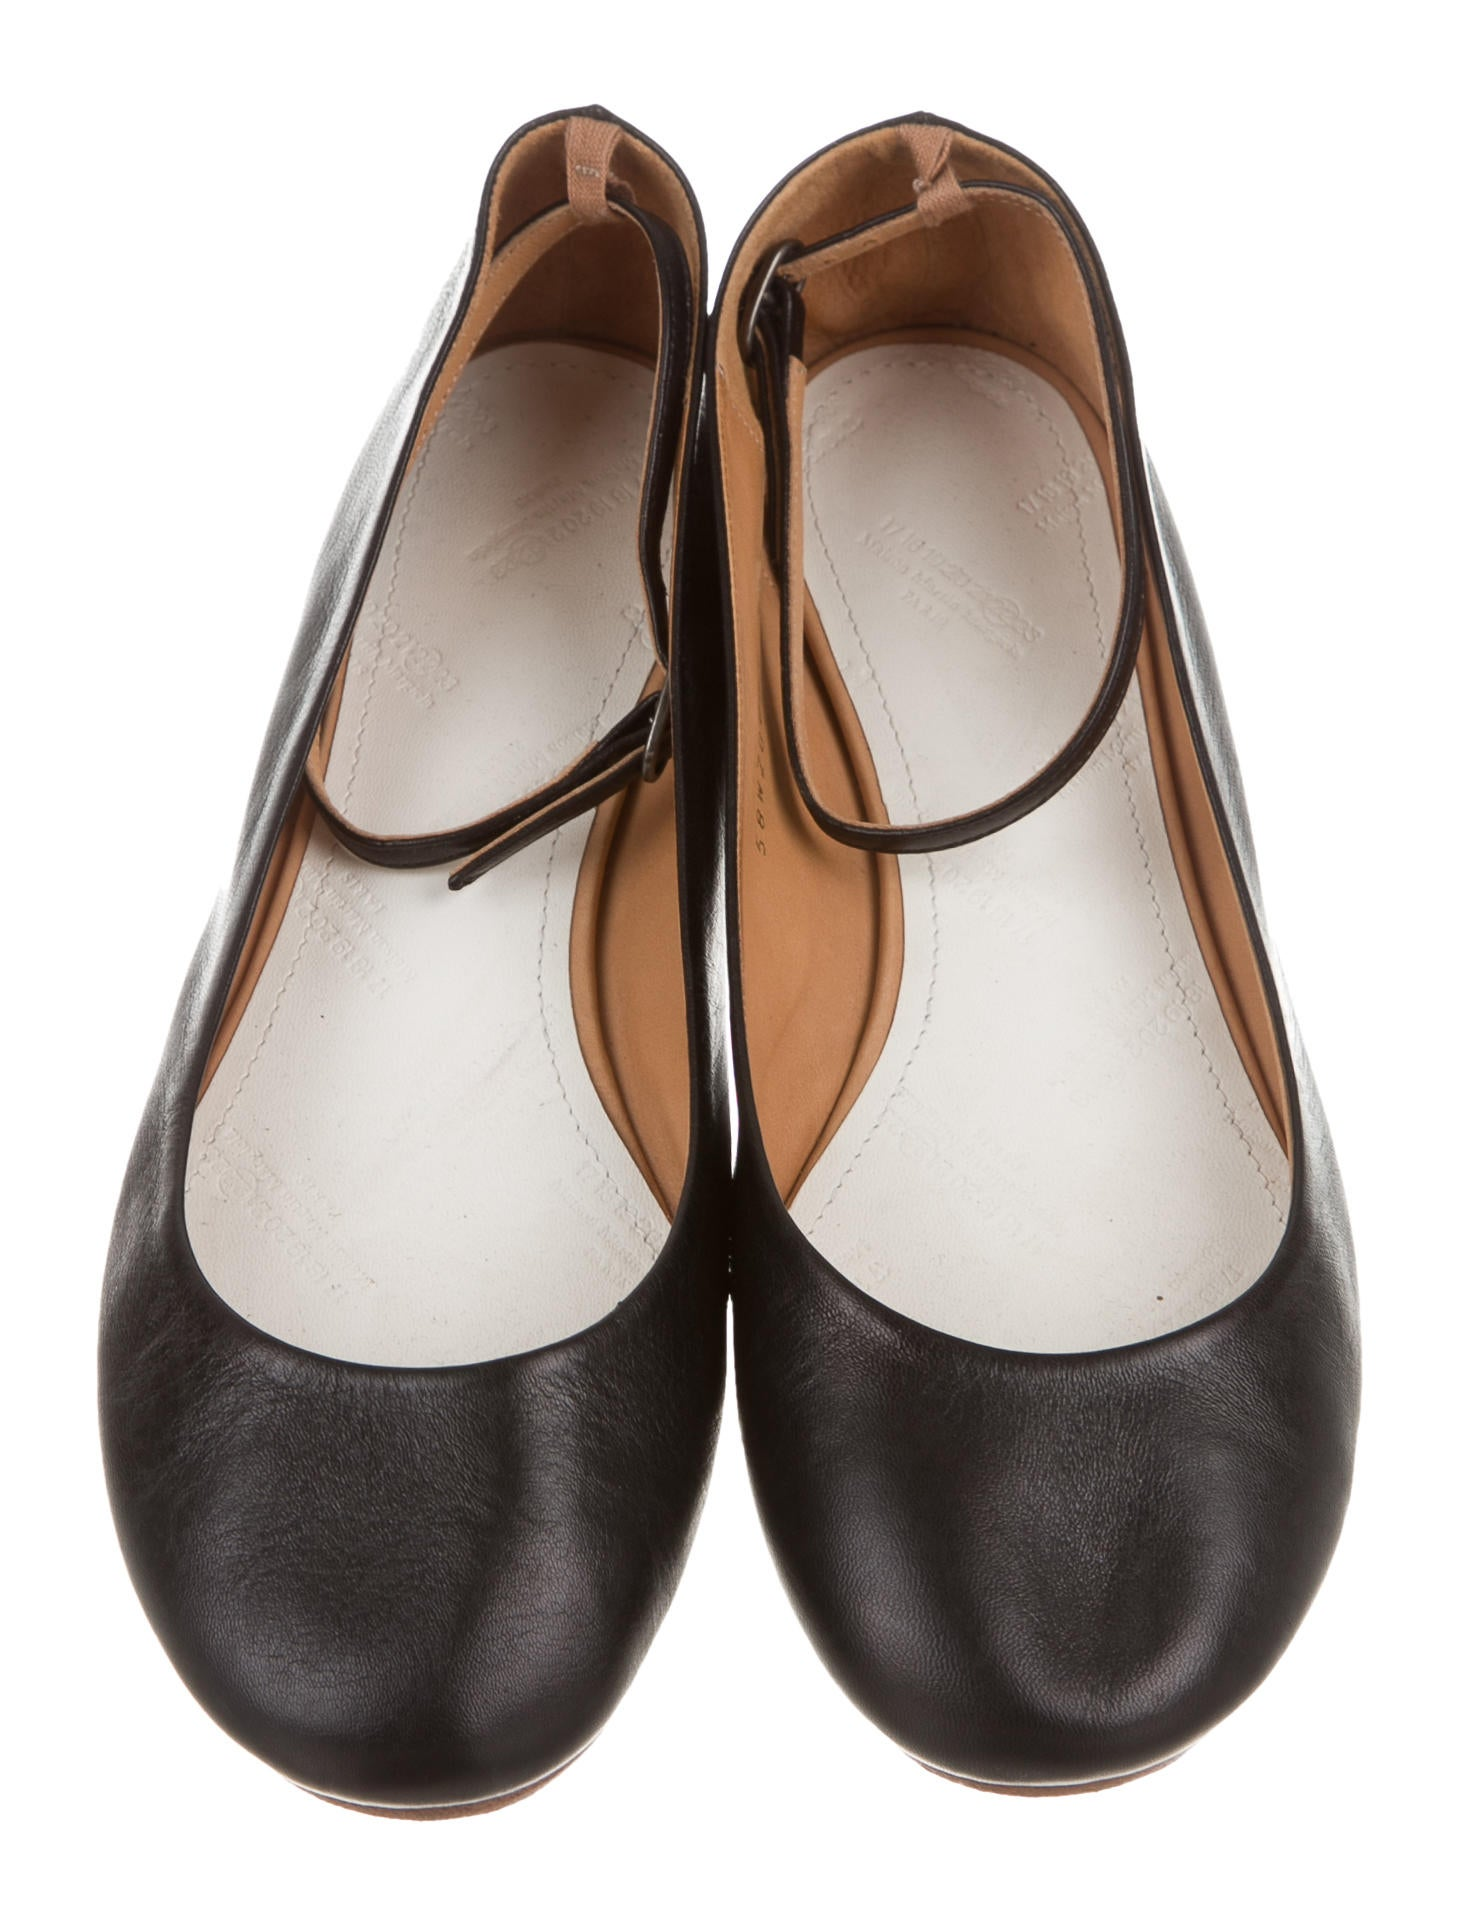 evildownloadersuper74k.ga: Ballet Flats With Ankle Straps. From The Community. Slip On Ballet Flat with Elastic Ankle Strap for Security and Style. alpine swiss Peony Womens Ballet Flats Elastic Ankle Strap Shoes Slip On Loafers. by alpine swiss. $ $ 11 99 Prime. FREE Shipping on eligible orders.